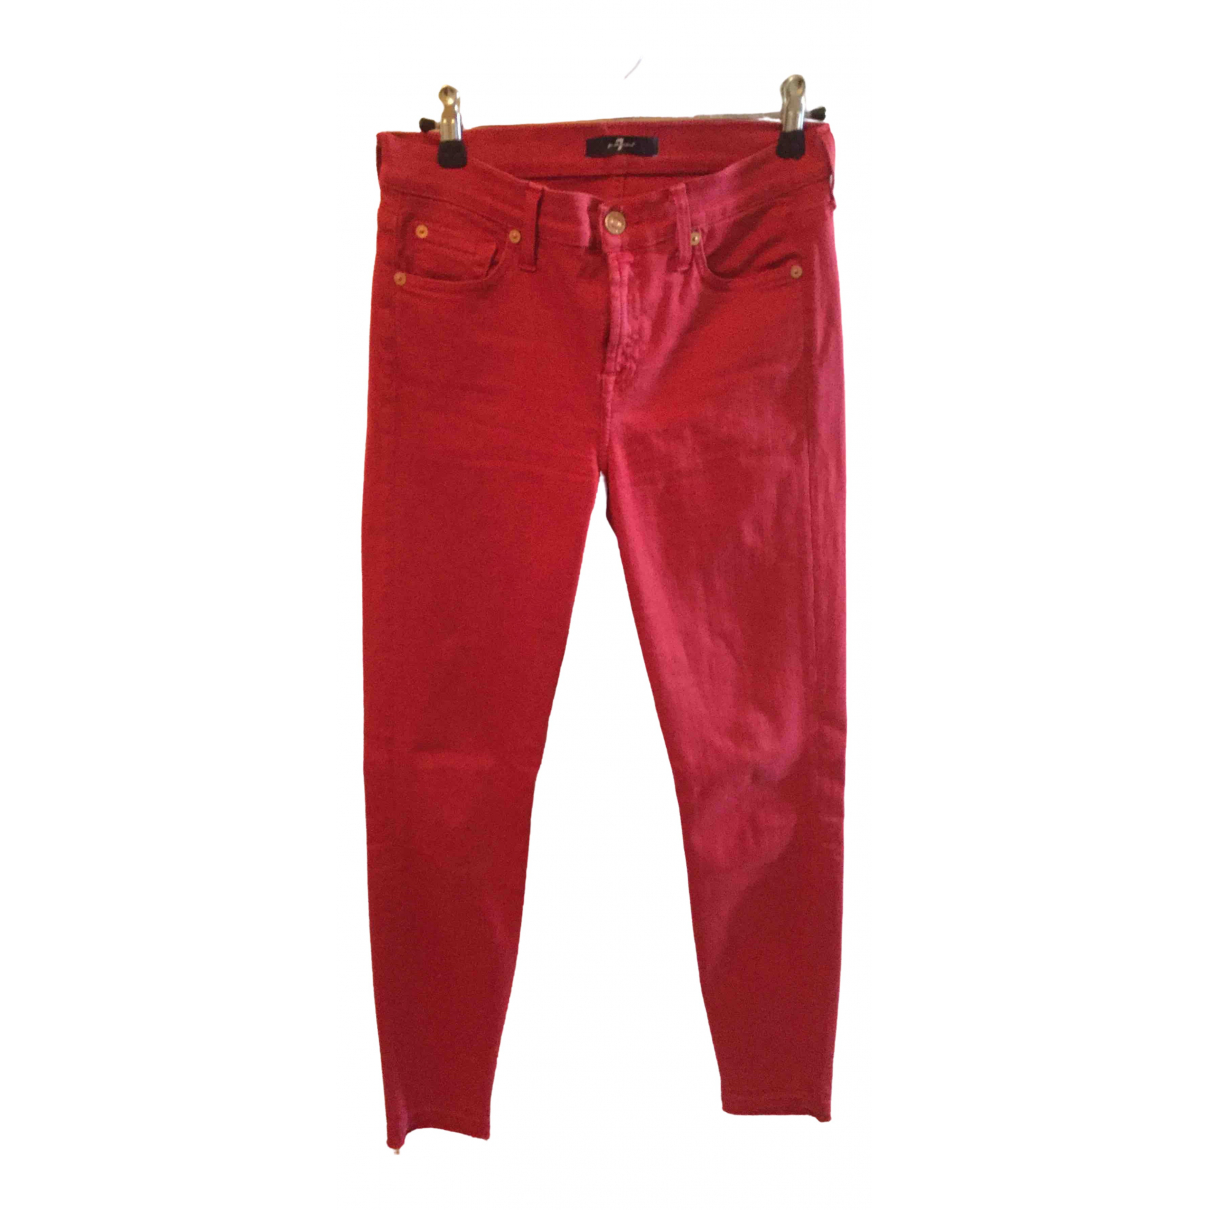 7 For All Mankind \N Red Cotton Trousers for Women 36 FR